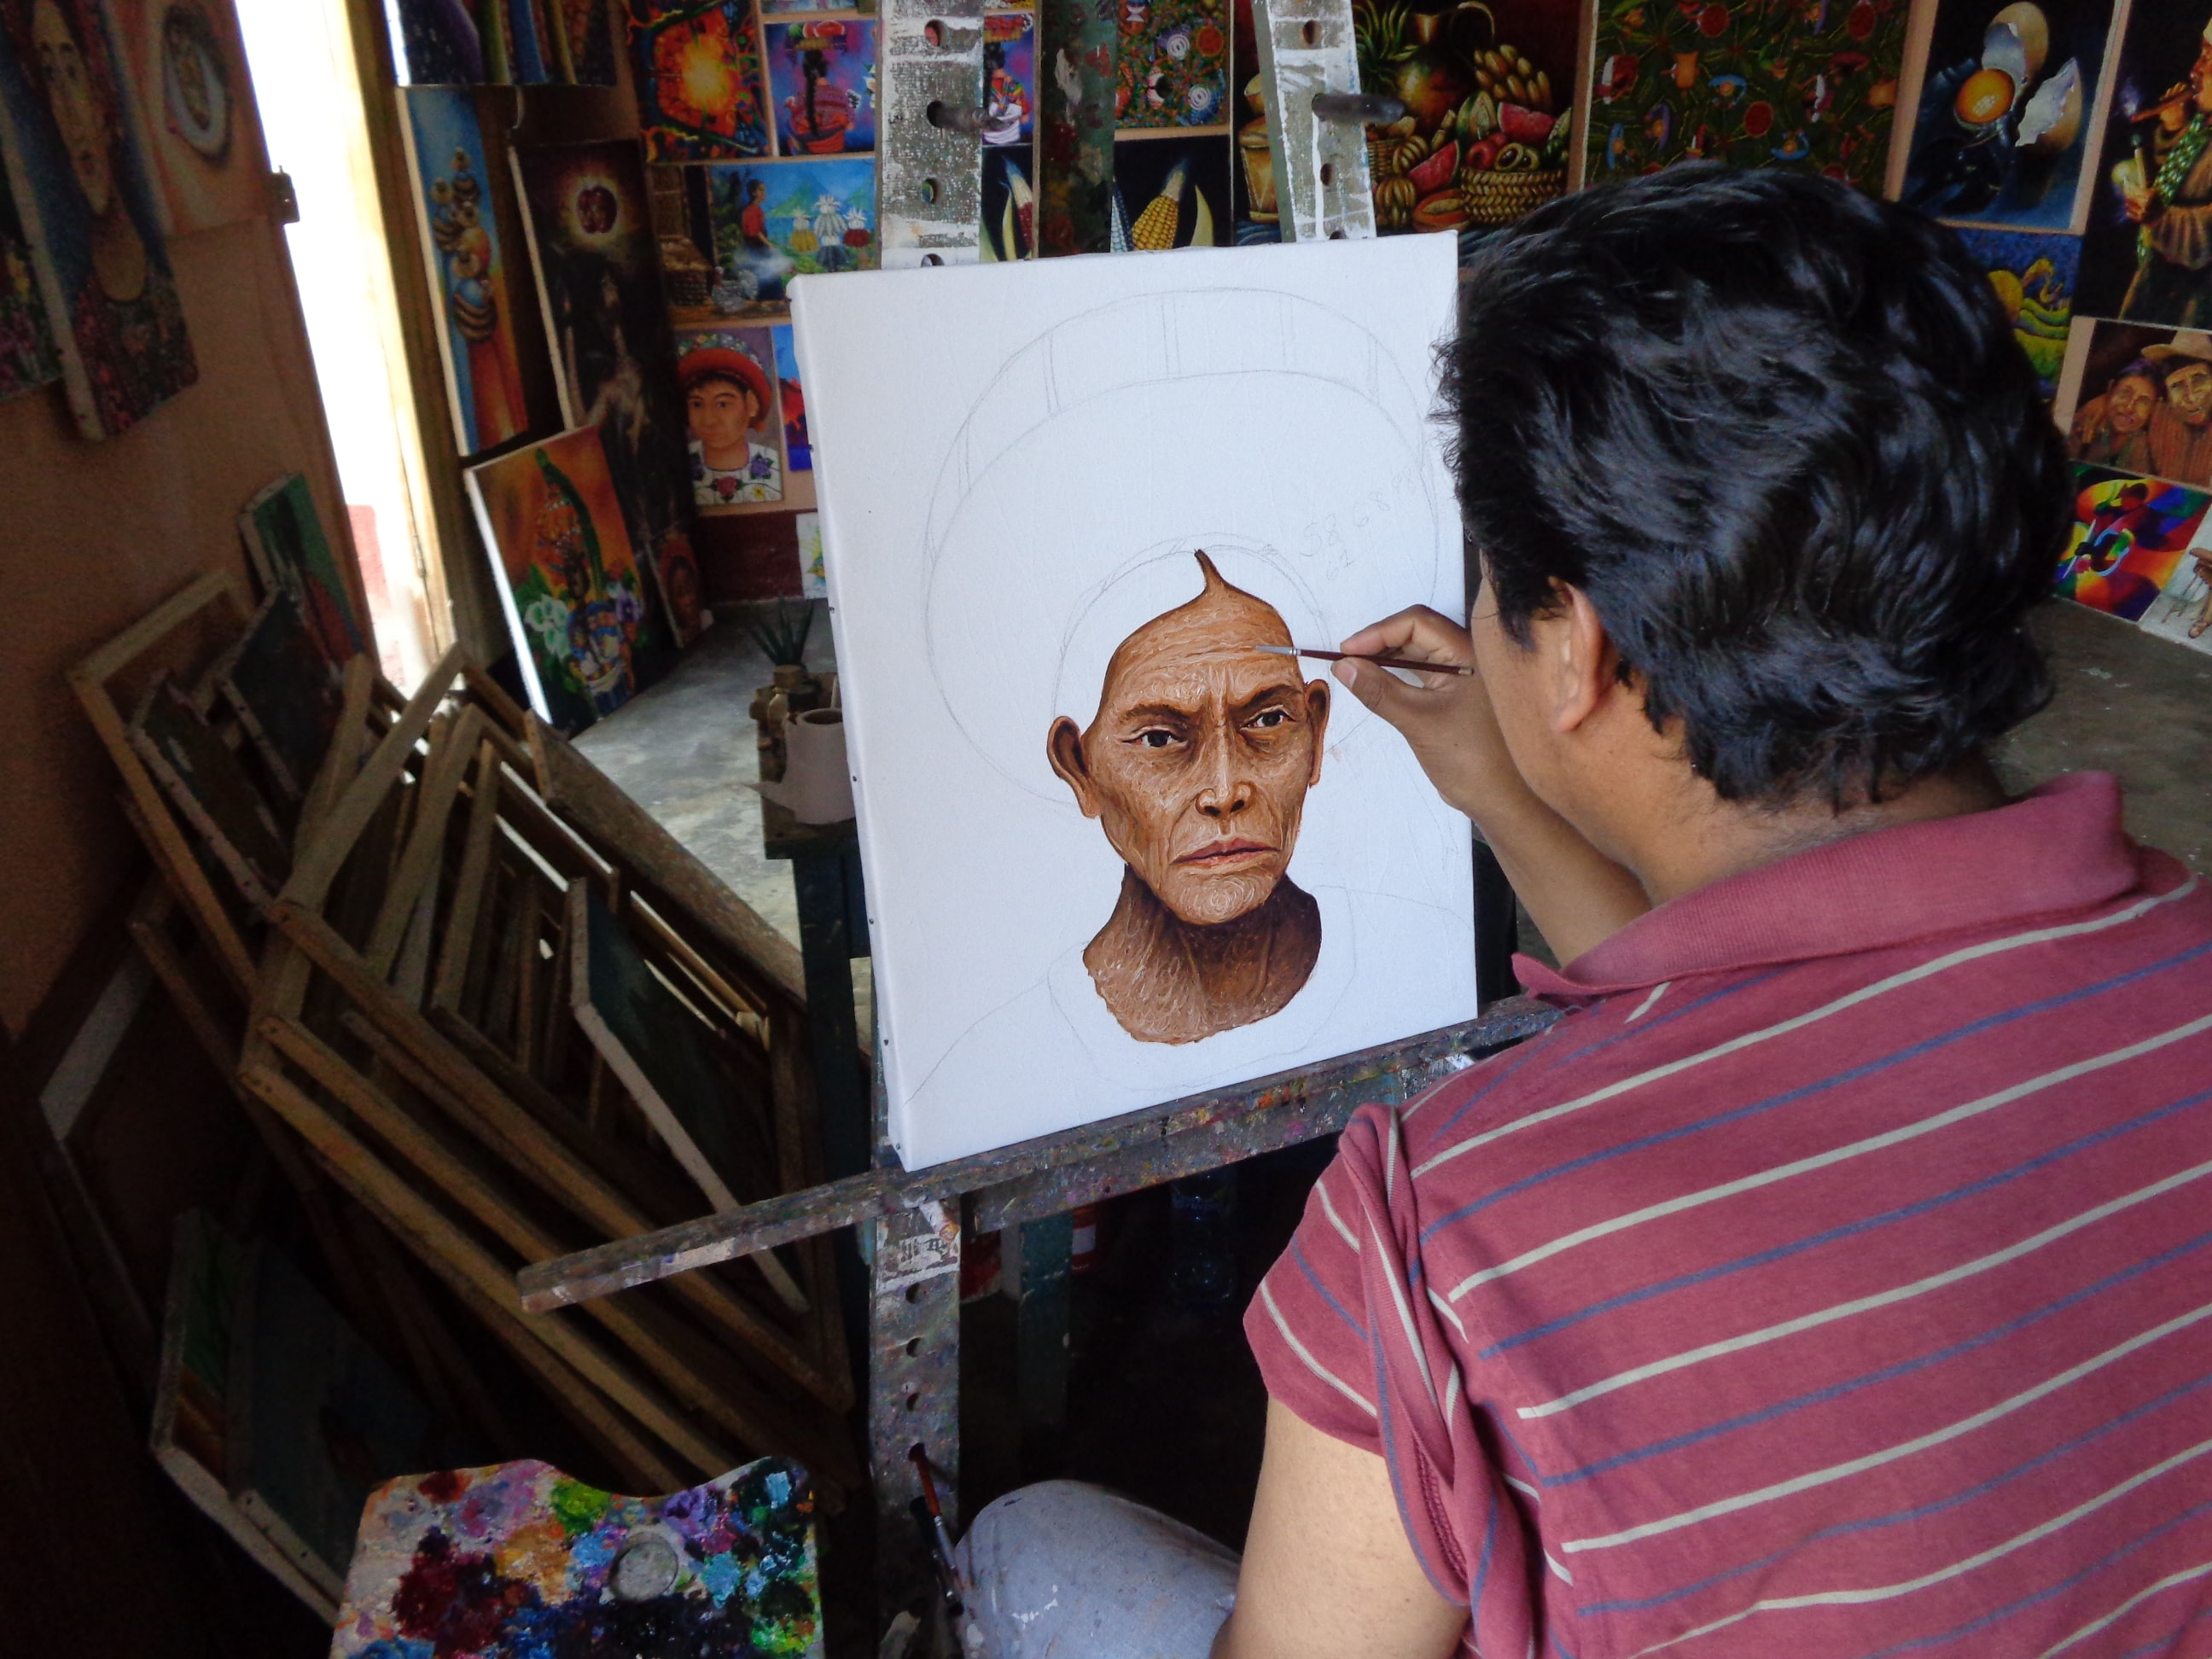 A man making a portrait of another person.